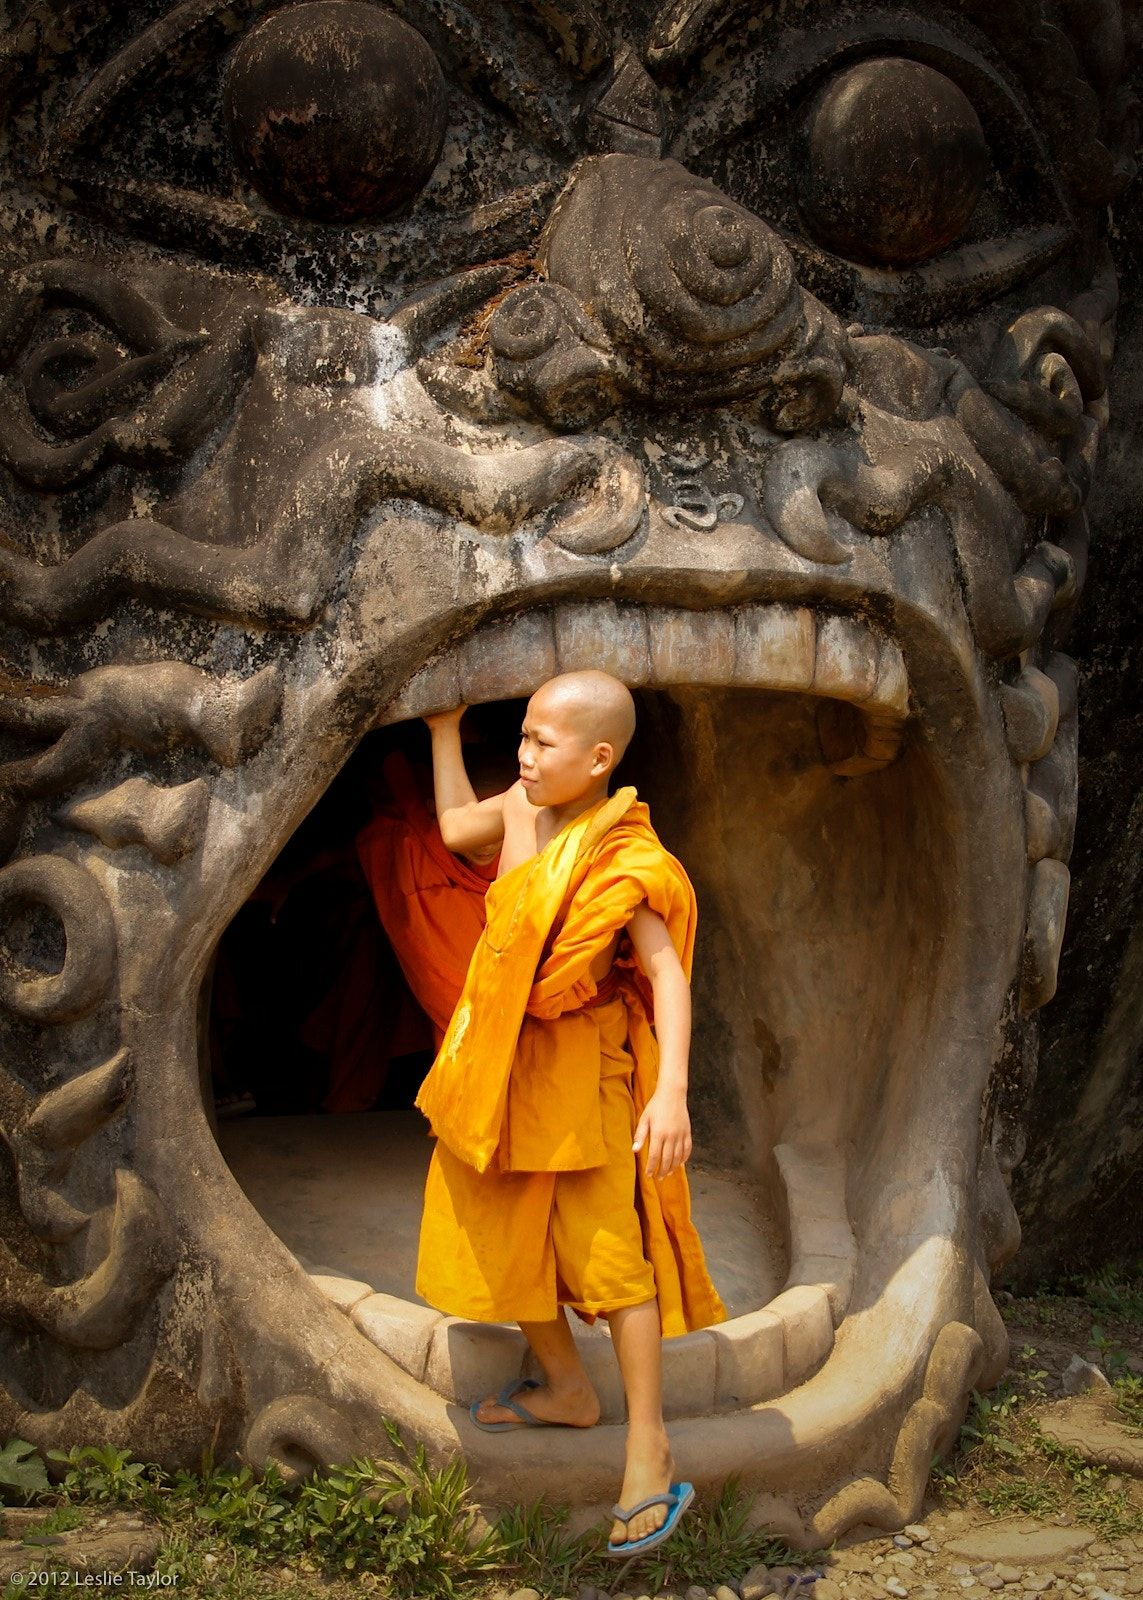 YOUNG LAOTIAN MONK - This shot was taken at the Buddha Park outside of Vientiane,  Laos. It was a Buddhist holiday and three young monks were visiting with their teacher.  They  had climbed to the top of this particular stone Buddha and I waited for them to come down through the mouth.